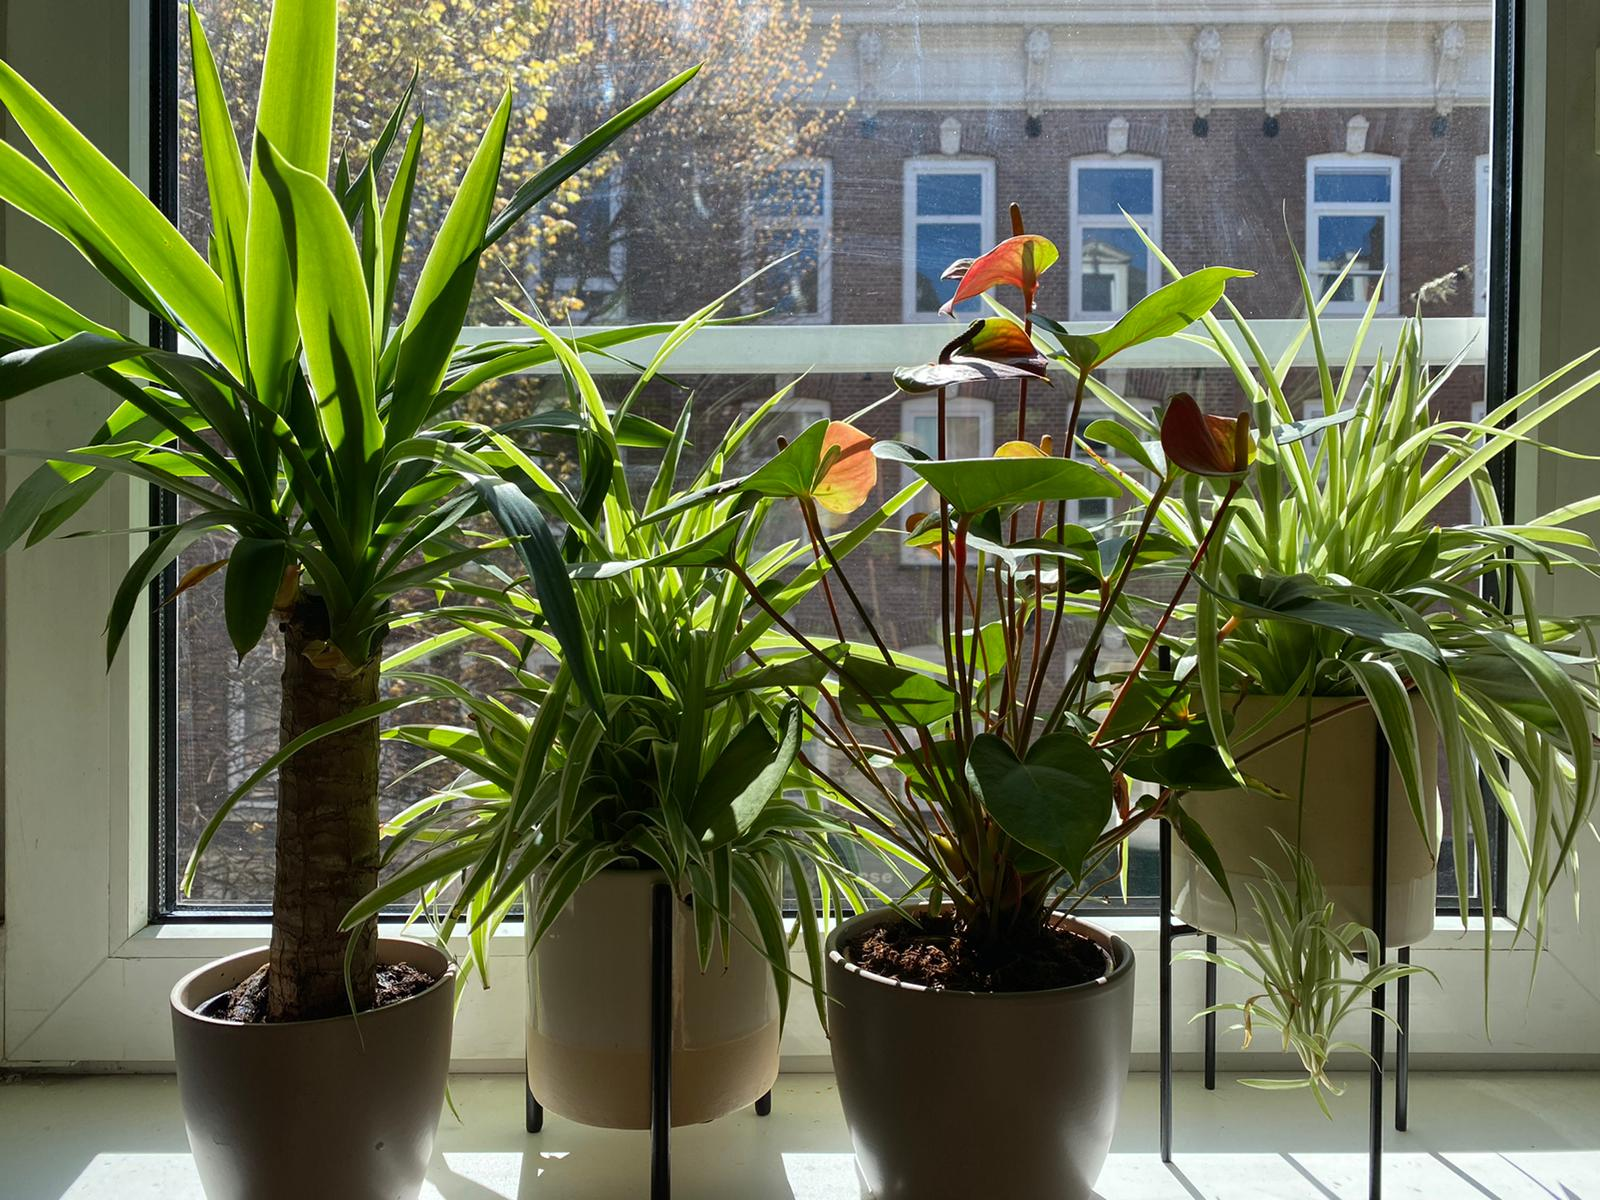 Potted plants in the sun on window sill